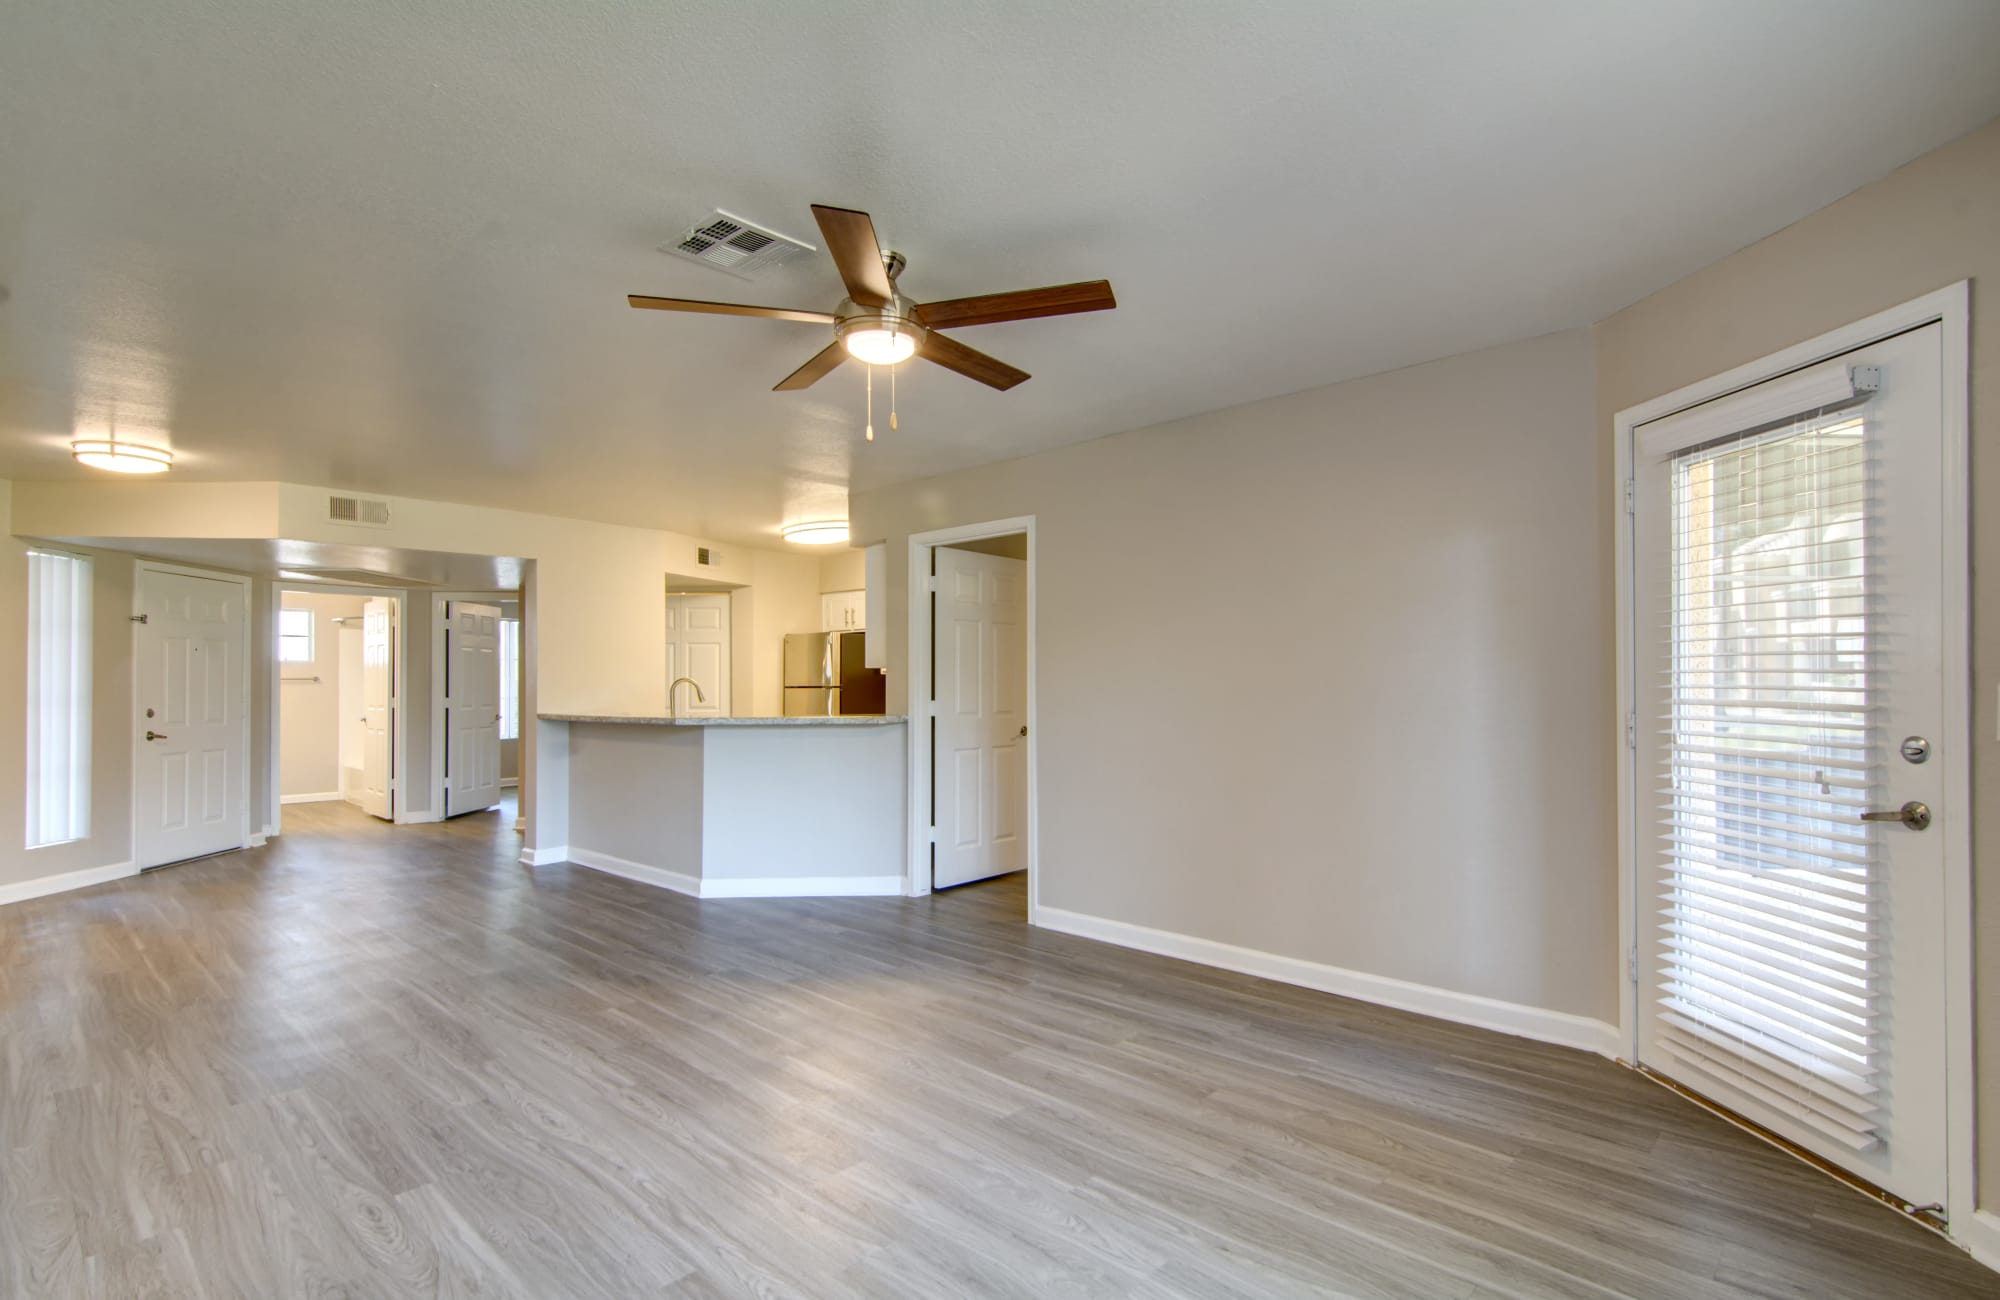 Large open floor plan with ceiling fan The Boulevard in Phoenix, AZ